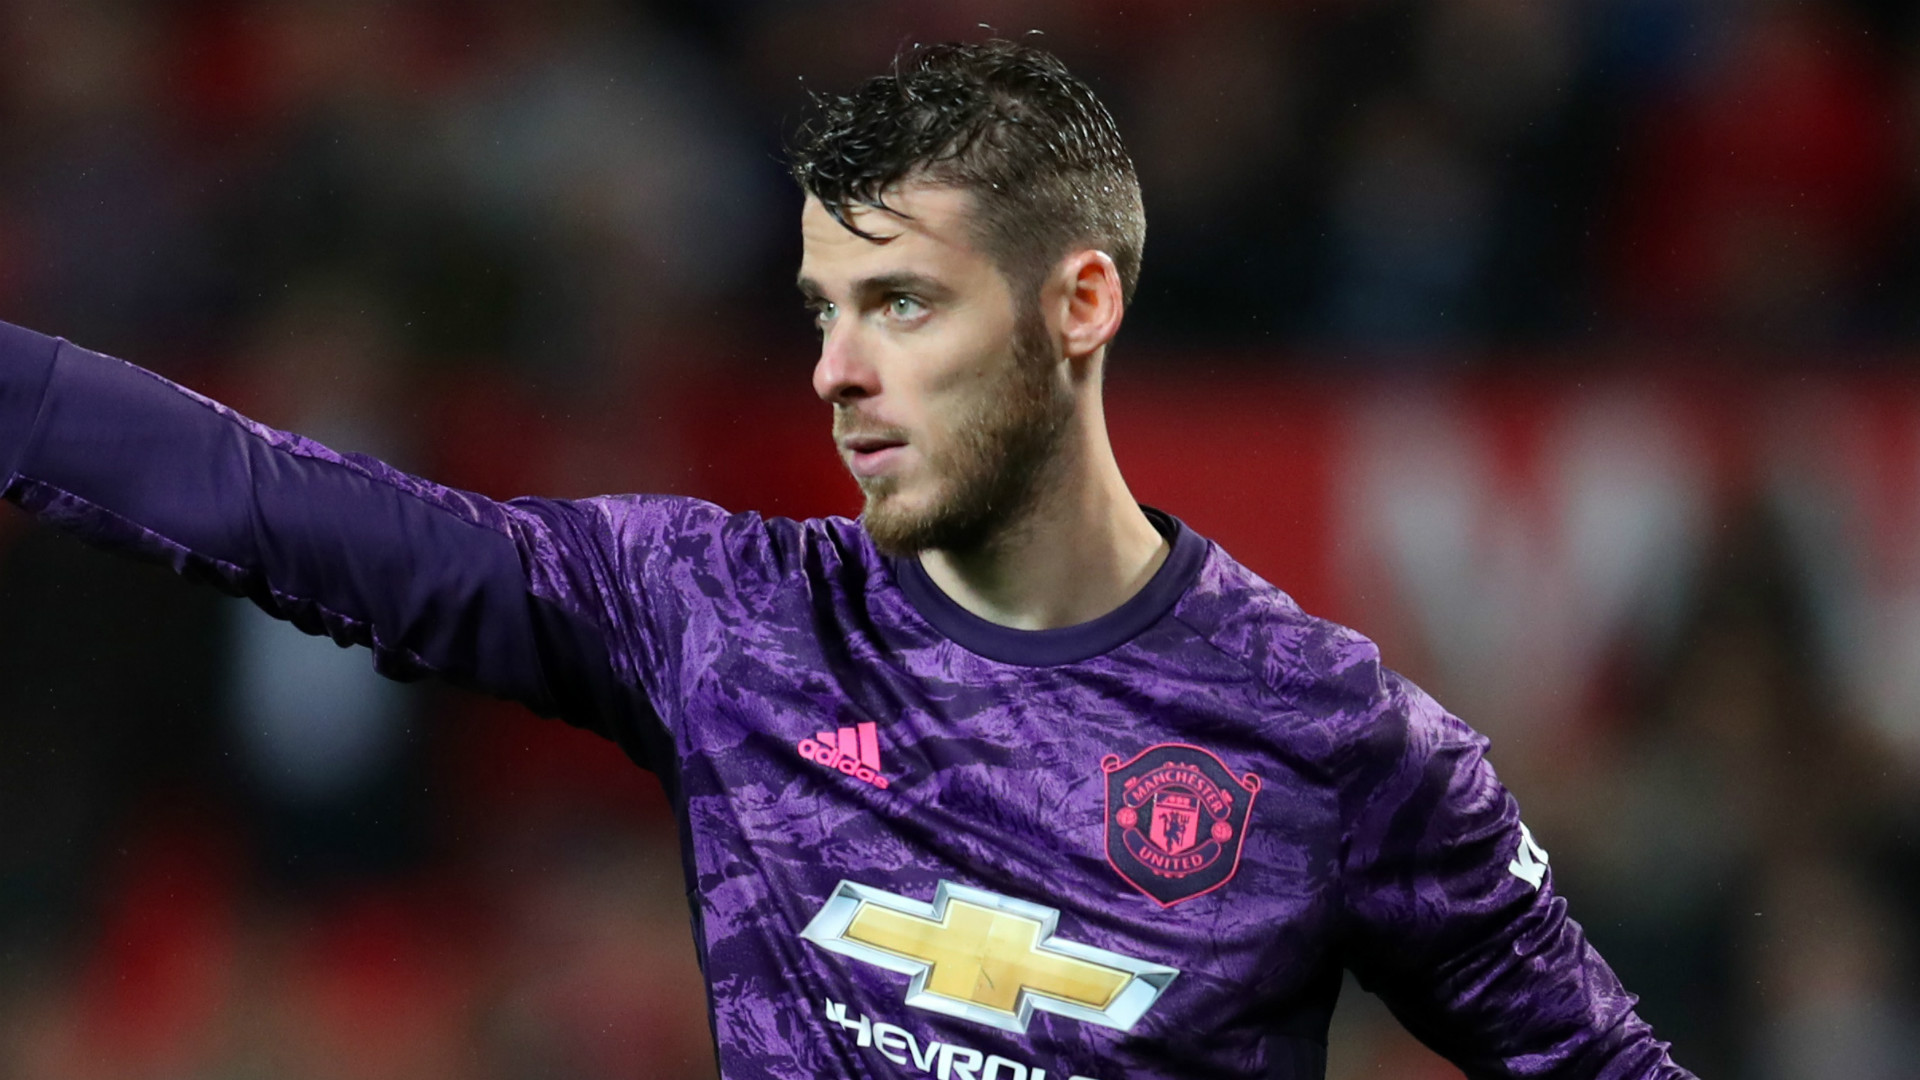 De Gea signed new Man Utd deal in order to land more trophies